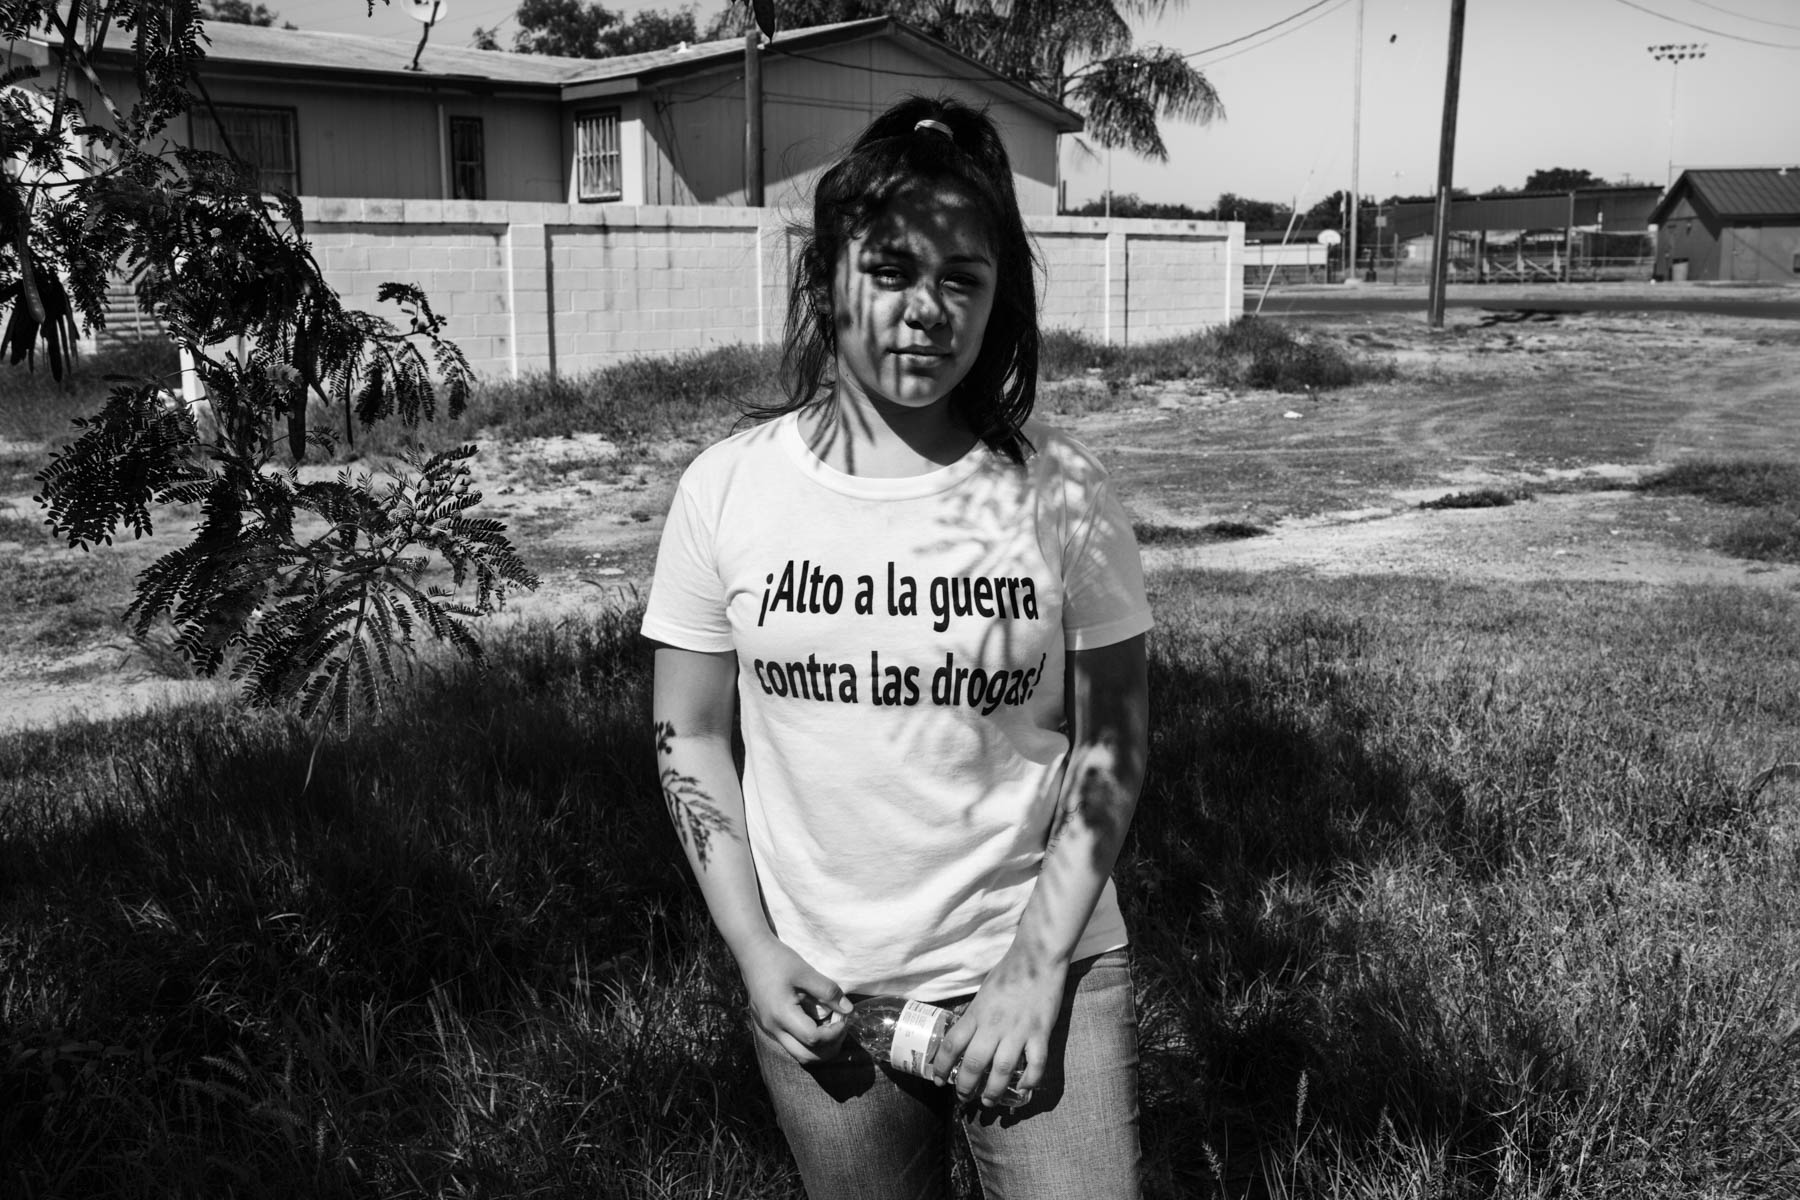 14 Apr 2016 - Laredo, Texas - Heidy Animas Lazcano poses on the parking lot of the church Centro Familiar Christiano, where she is waiting for her mother Myrna to be released by the CBP. Heidy and her sister Michel have been seperated from their mother after she was deported to Mexico three years ago in 2013. In 2012, 200 thousand parents have been separted from their US-citizen children through deportation.